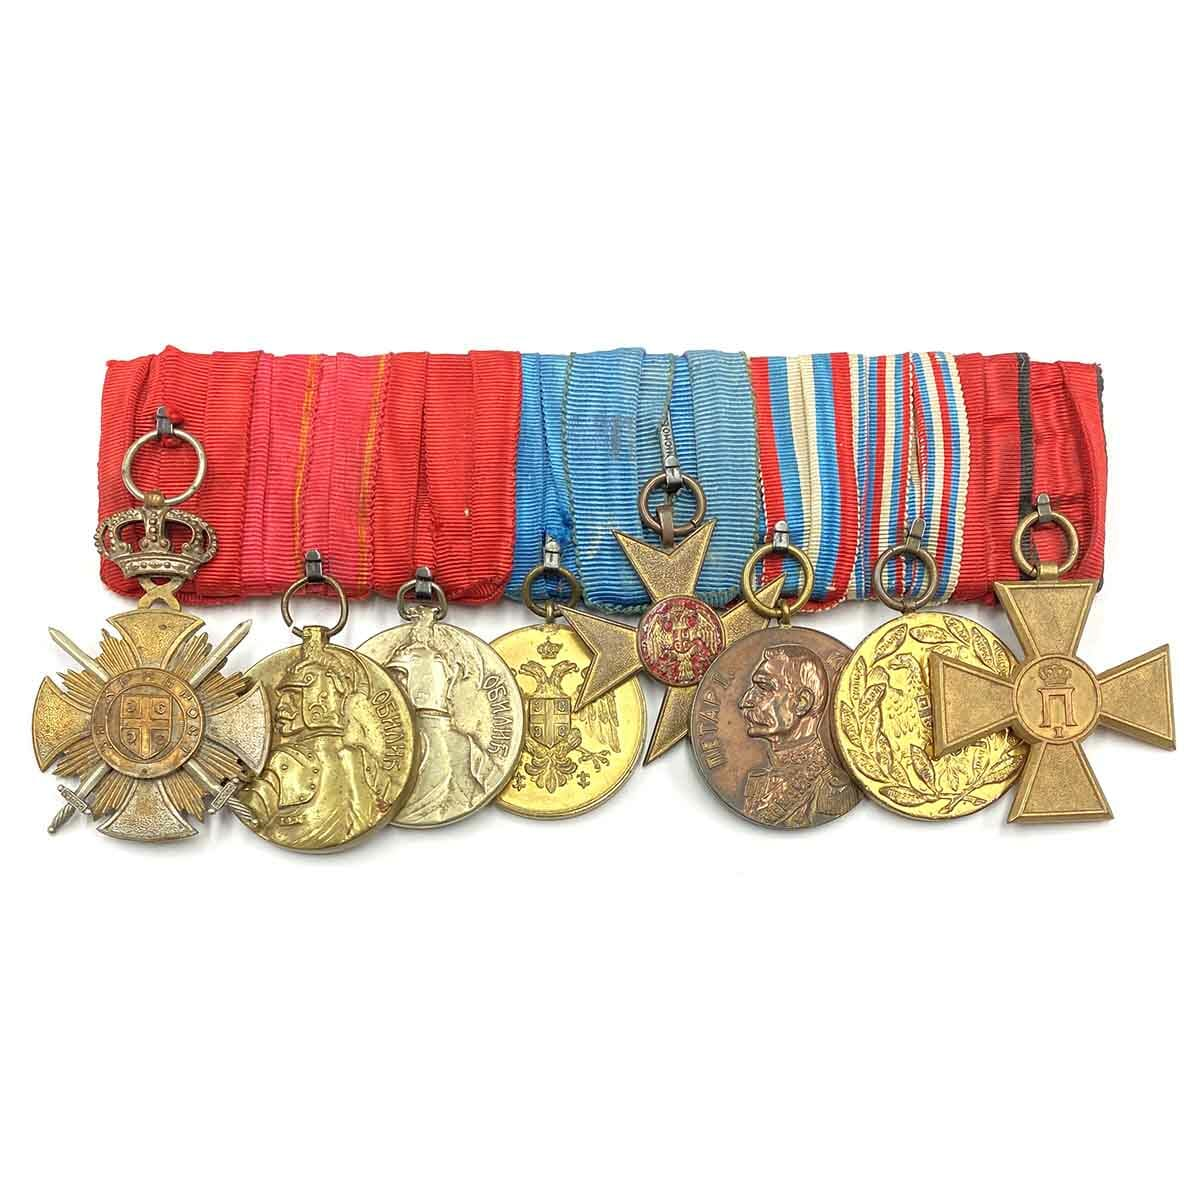 Group of 8 mounted Serbian style, Karageorge Soldiers cross 1